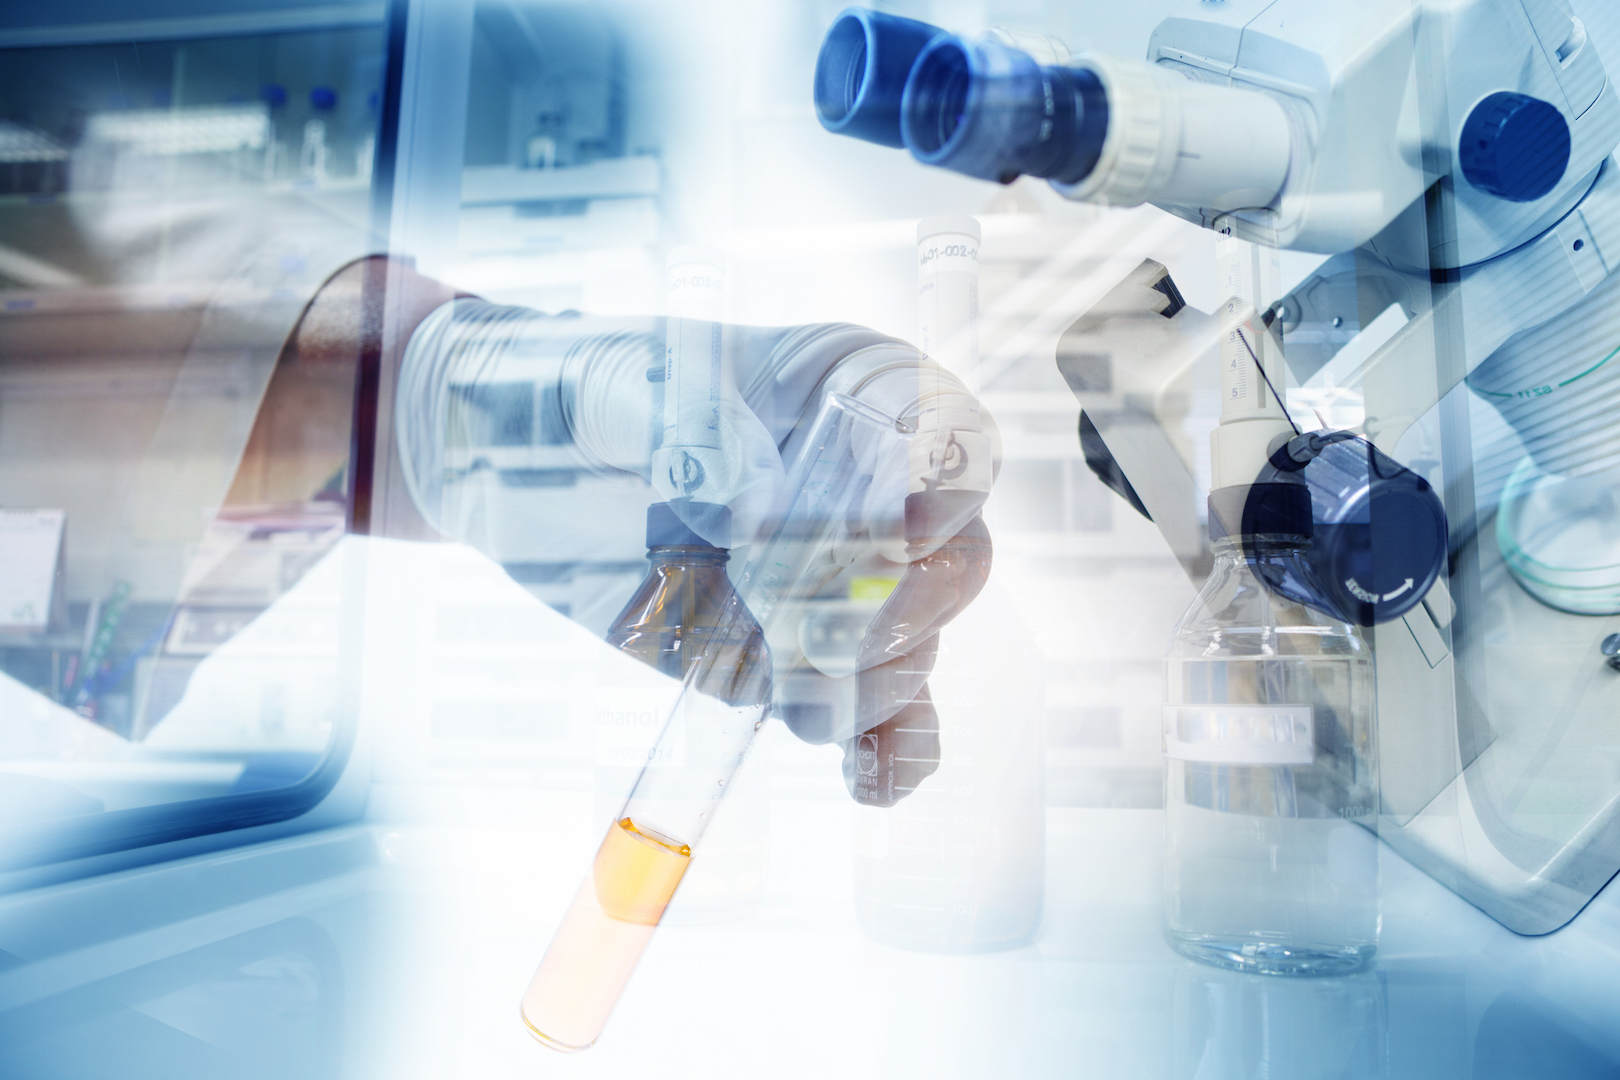 pharma research in a lab